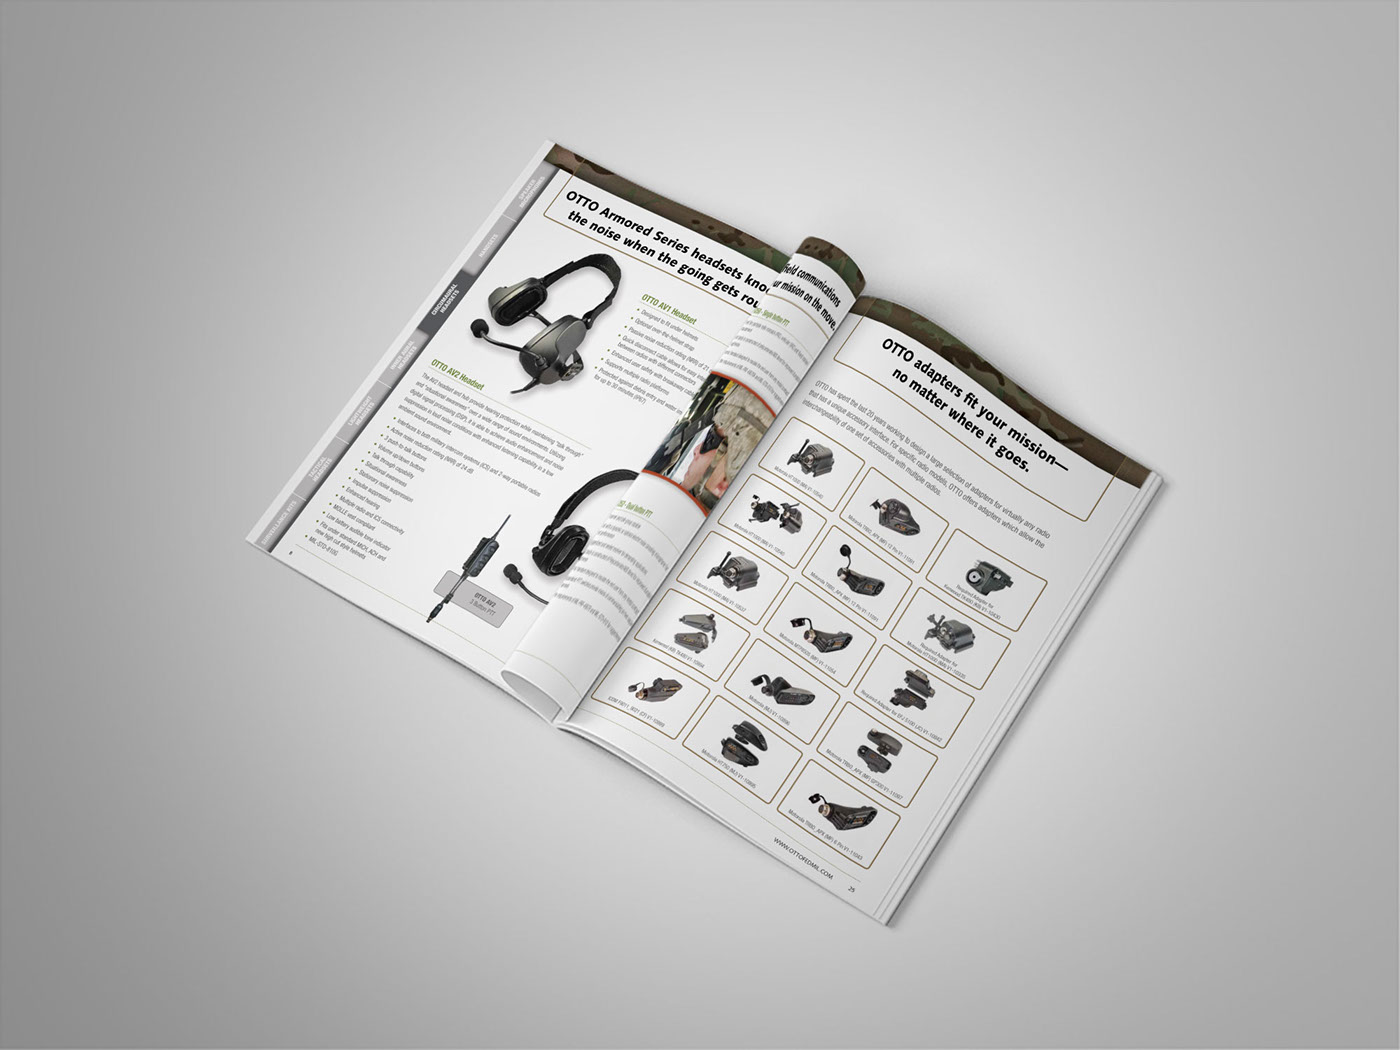 Otto Engineering Catalog On Behance Headset Wiring Diagram Thank You